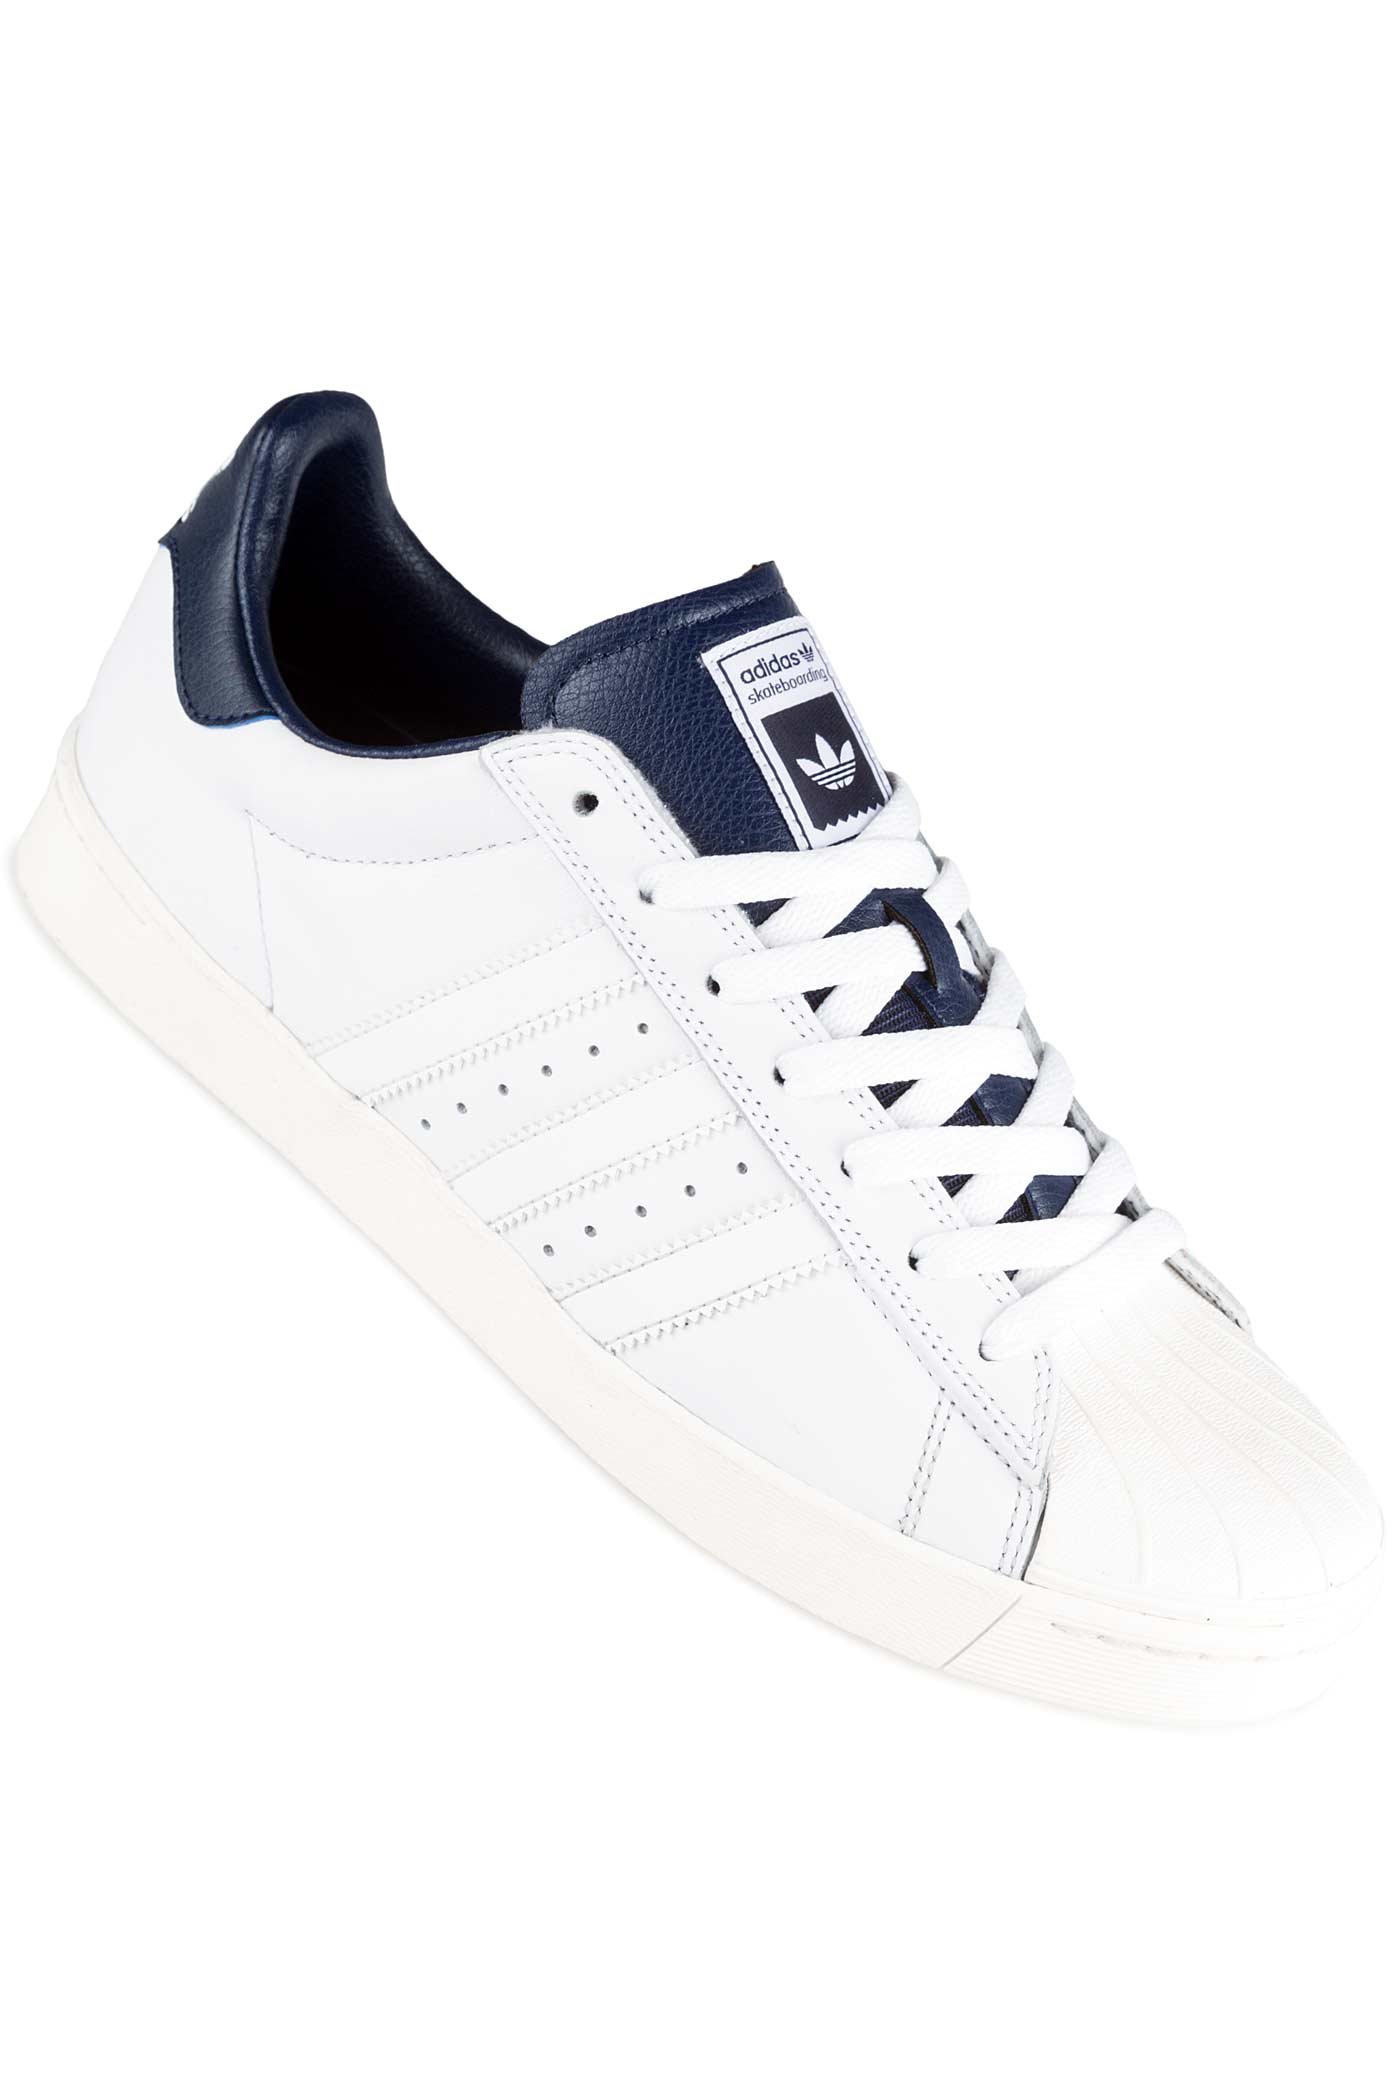 adidas superstar vulc adv schuh white white navy kaufen. Black Bedroom Furniture Sets. Home Design Ideas